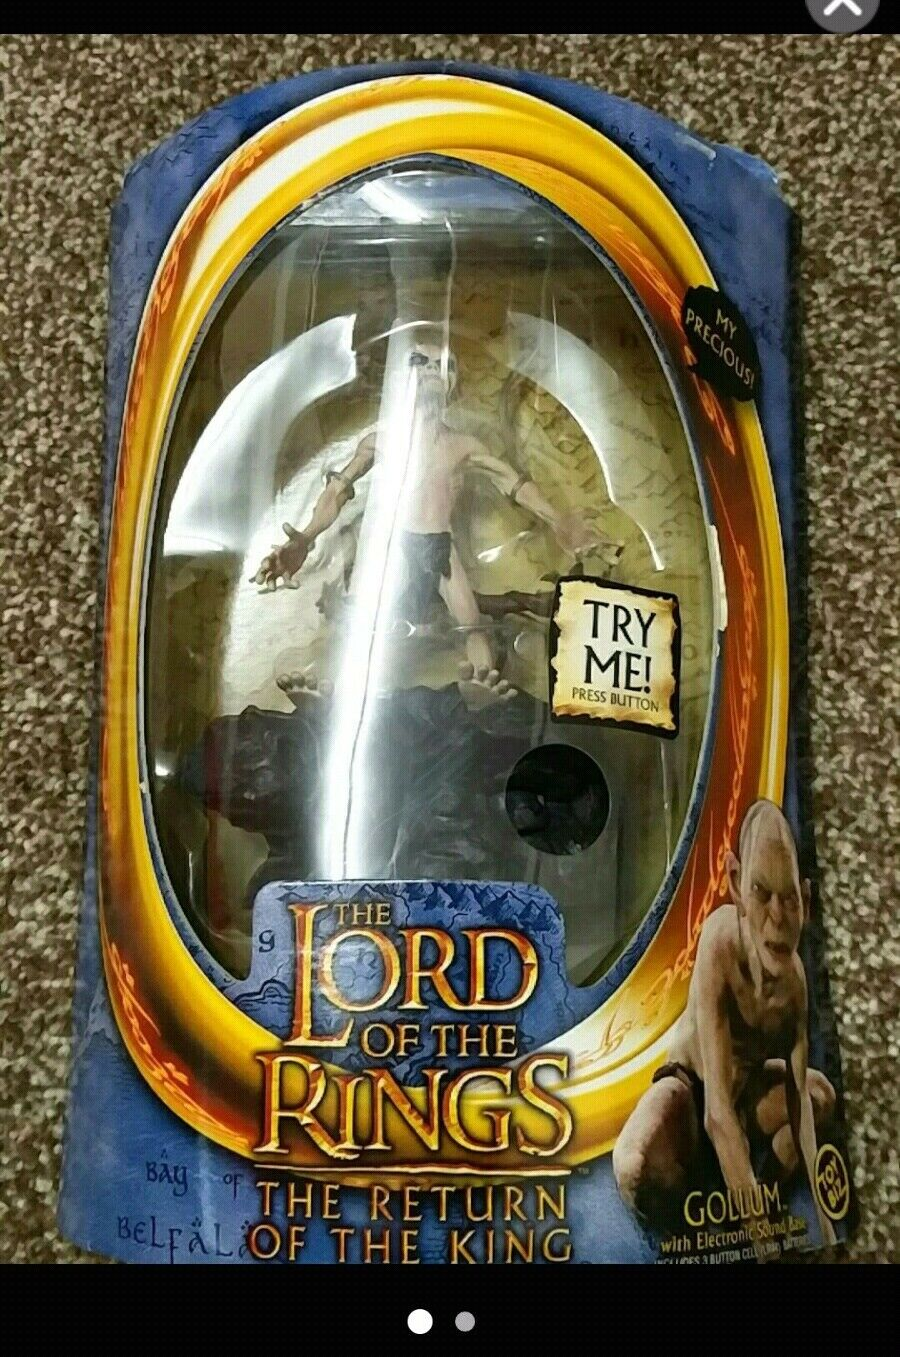 Lord of the rings figure collectable item